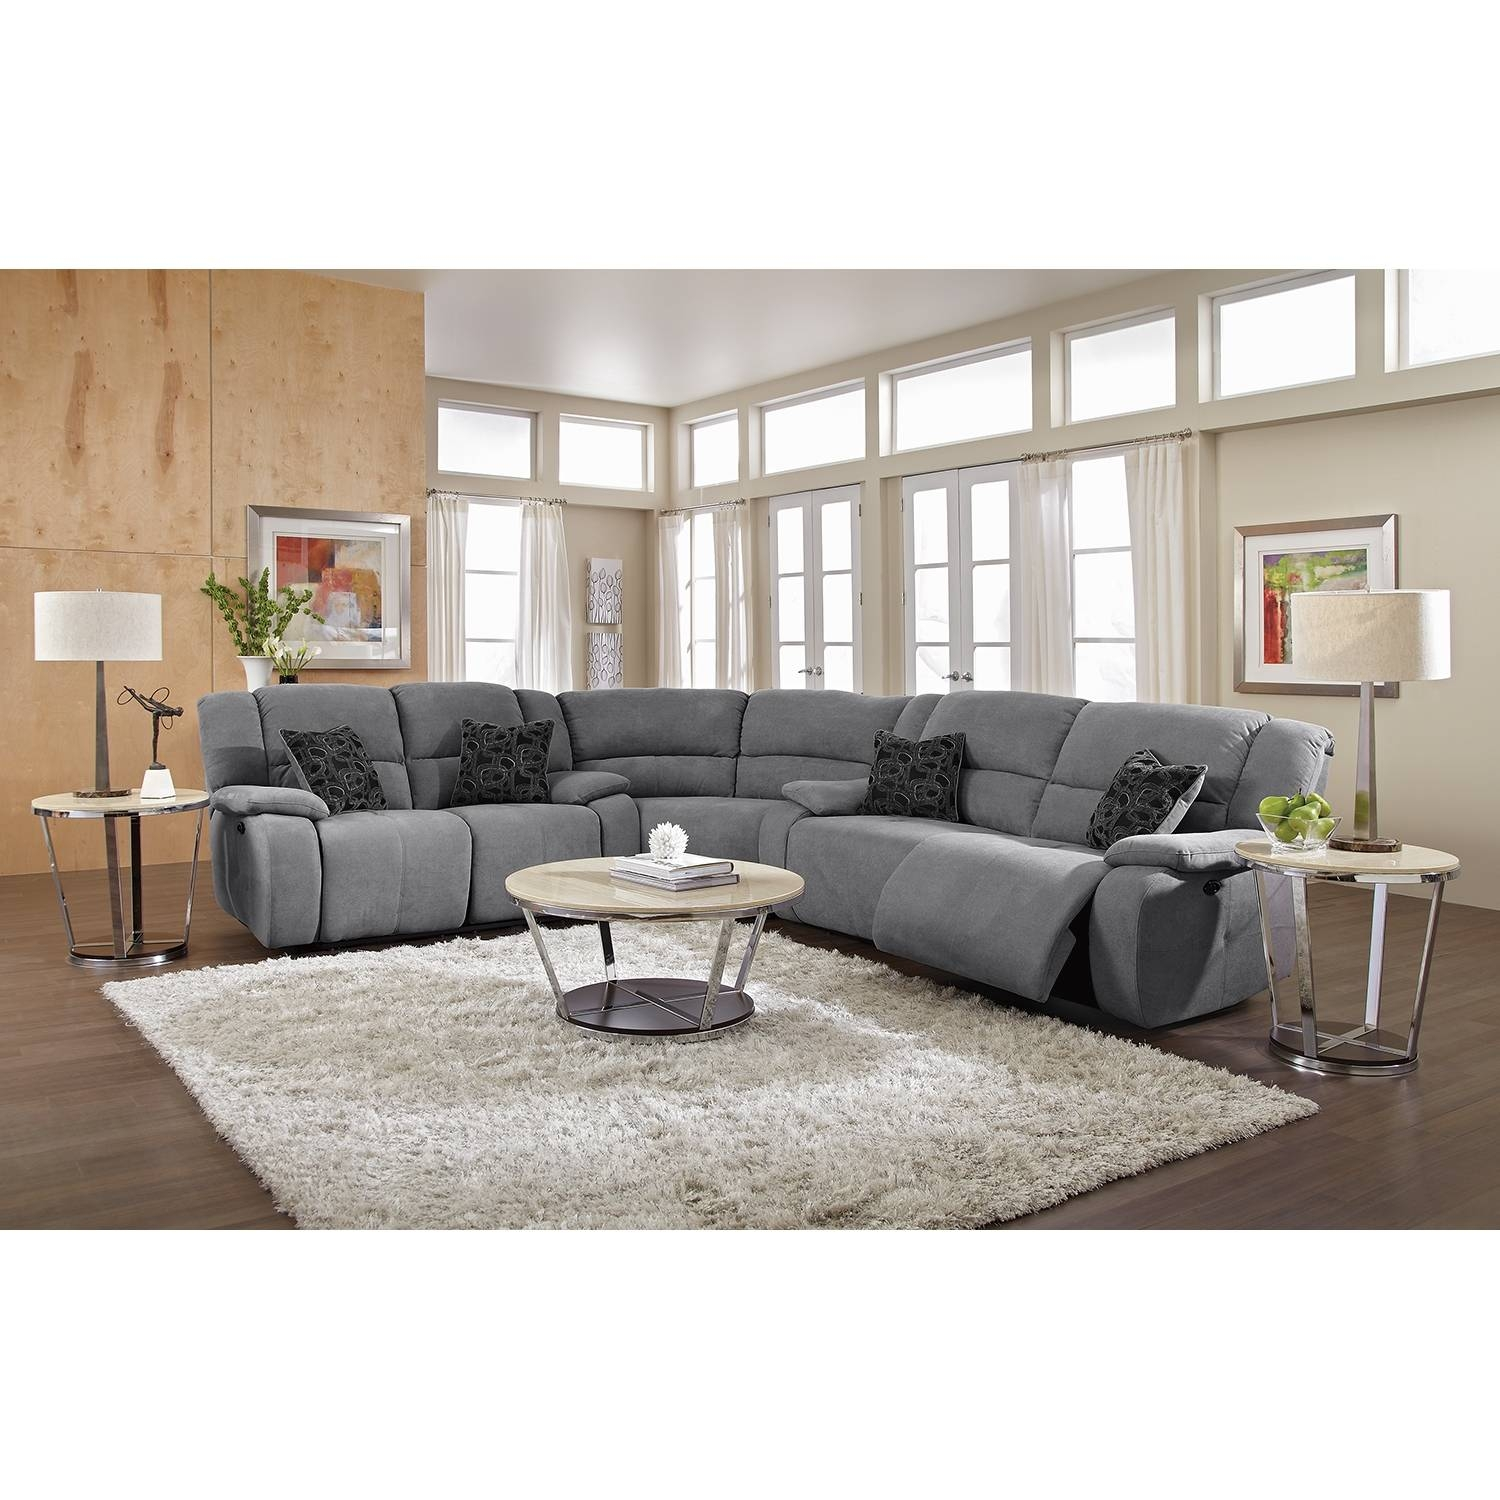 Furniture: Fantastic Sectional Couches With Recliners For Your regarding Recliner Sectional Sofas (Image 10 of 30)